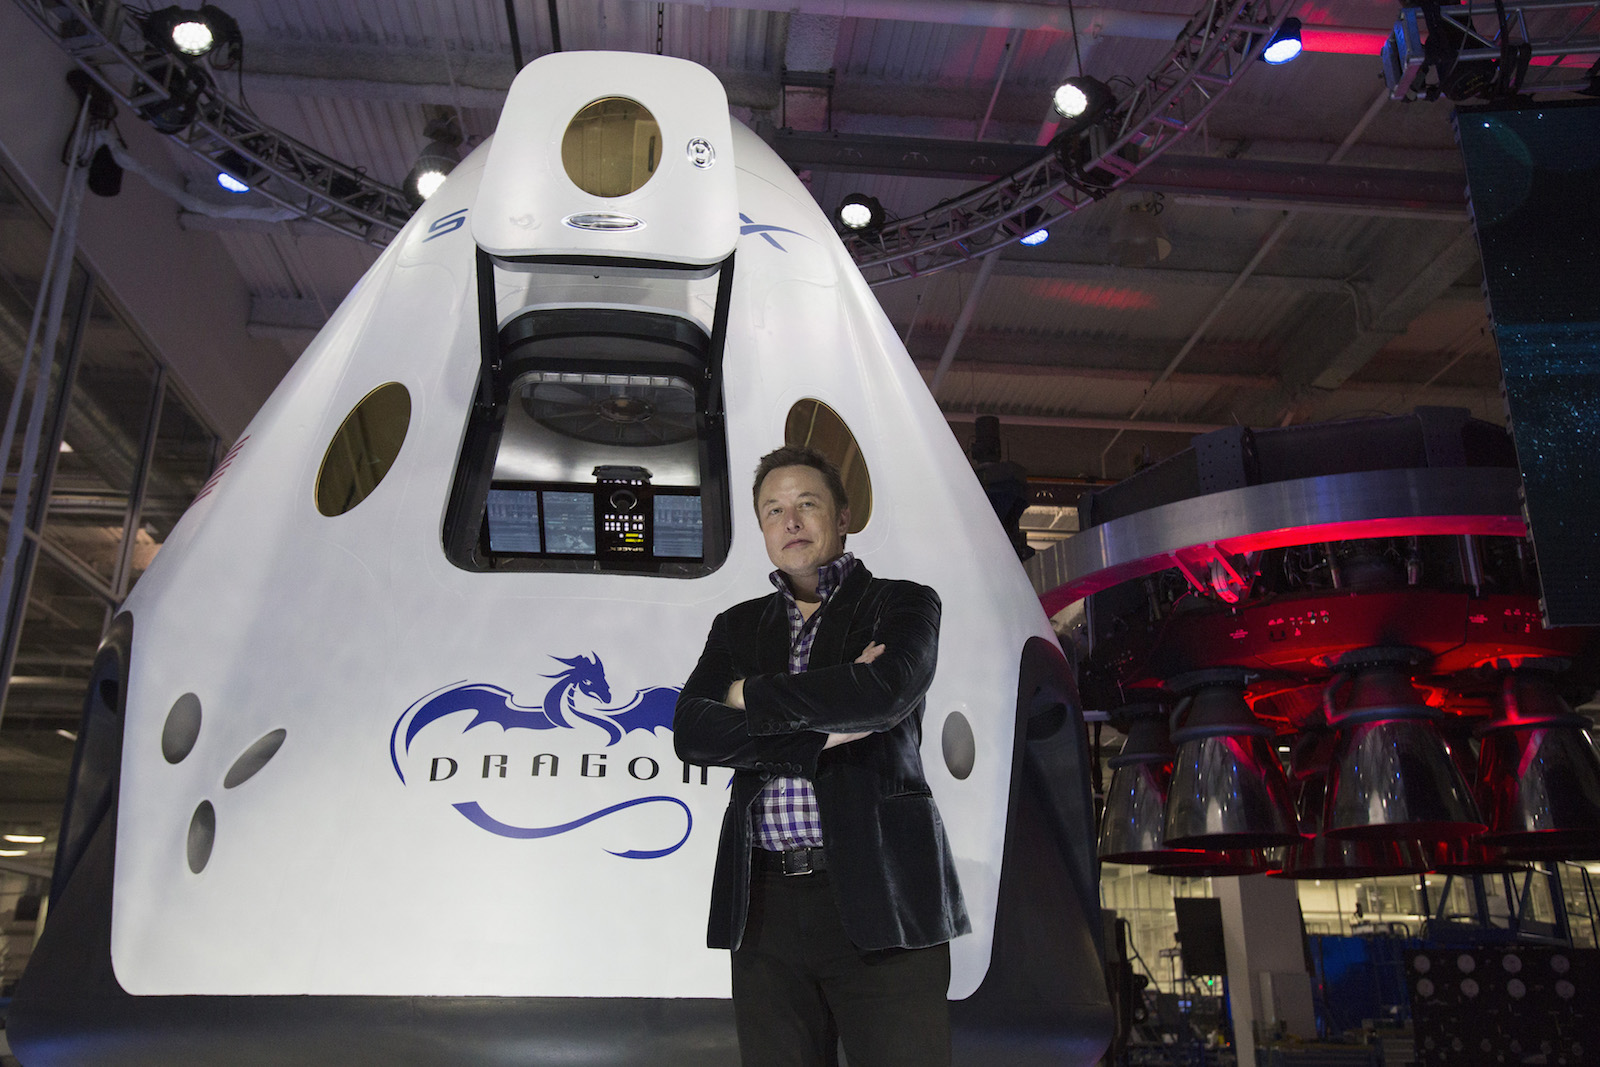 SpaceX CEO Musk poses by the Dragon V2 spacecraft after it was unveiled in Hawthorne